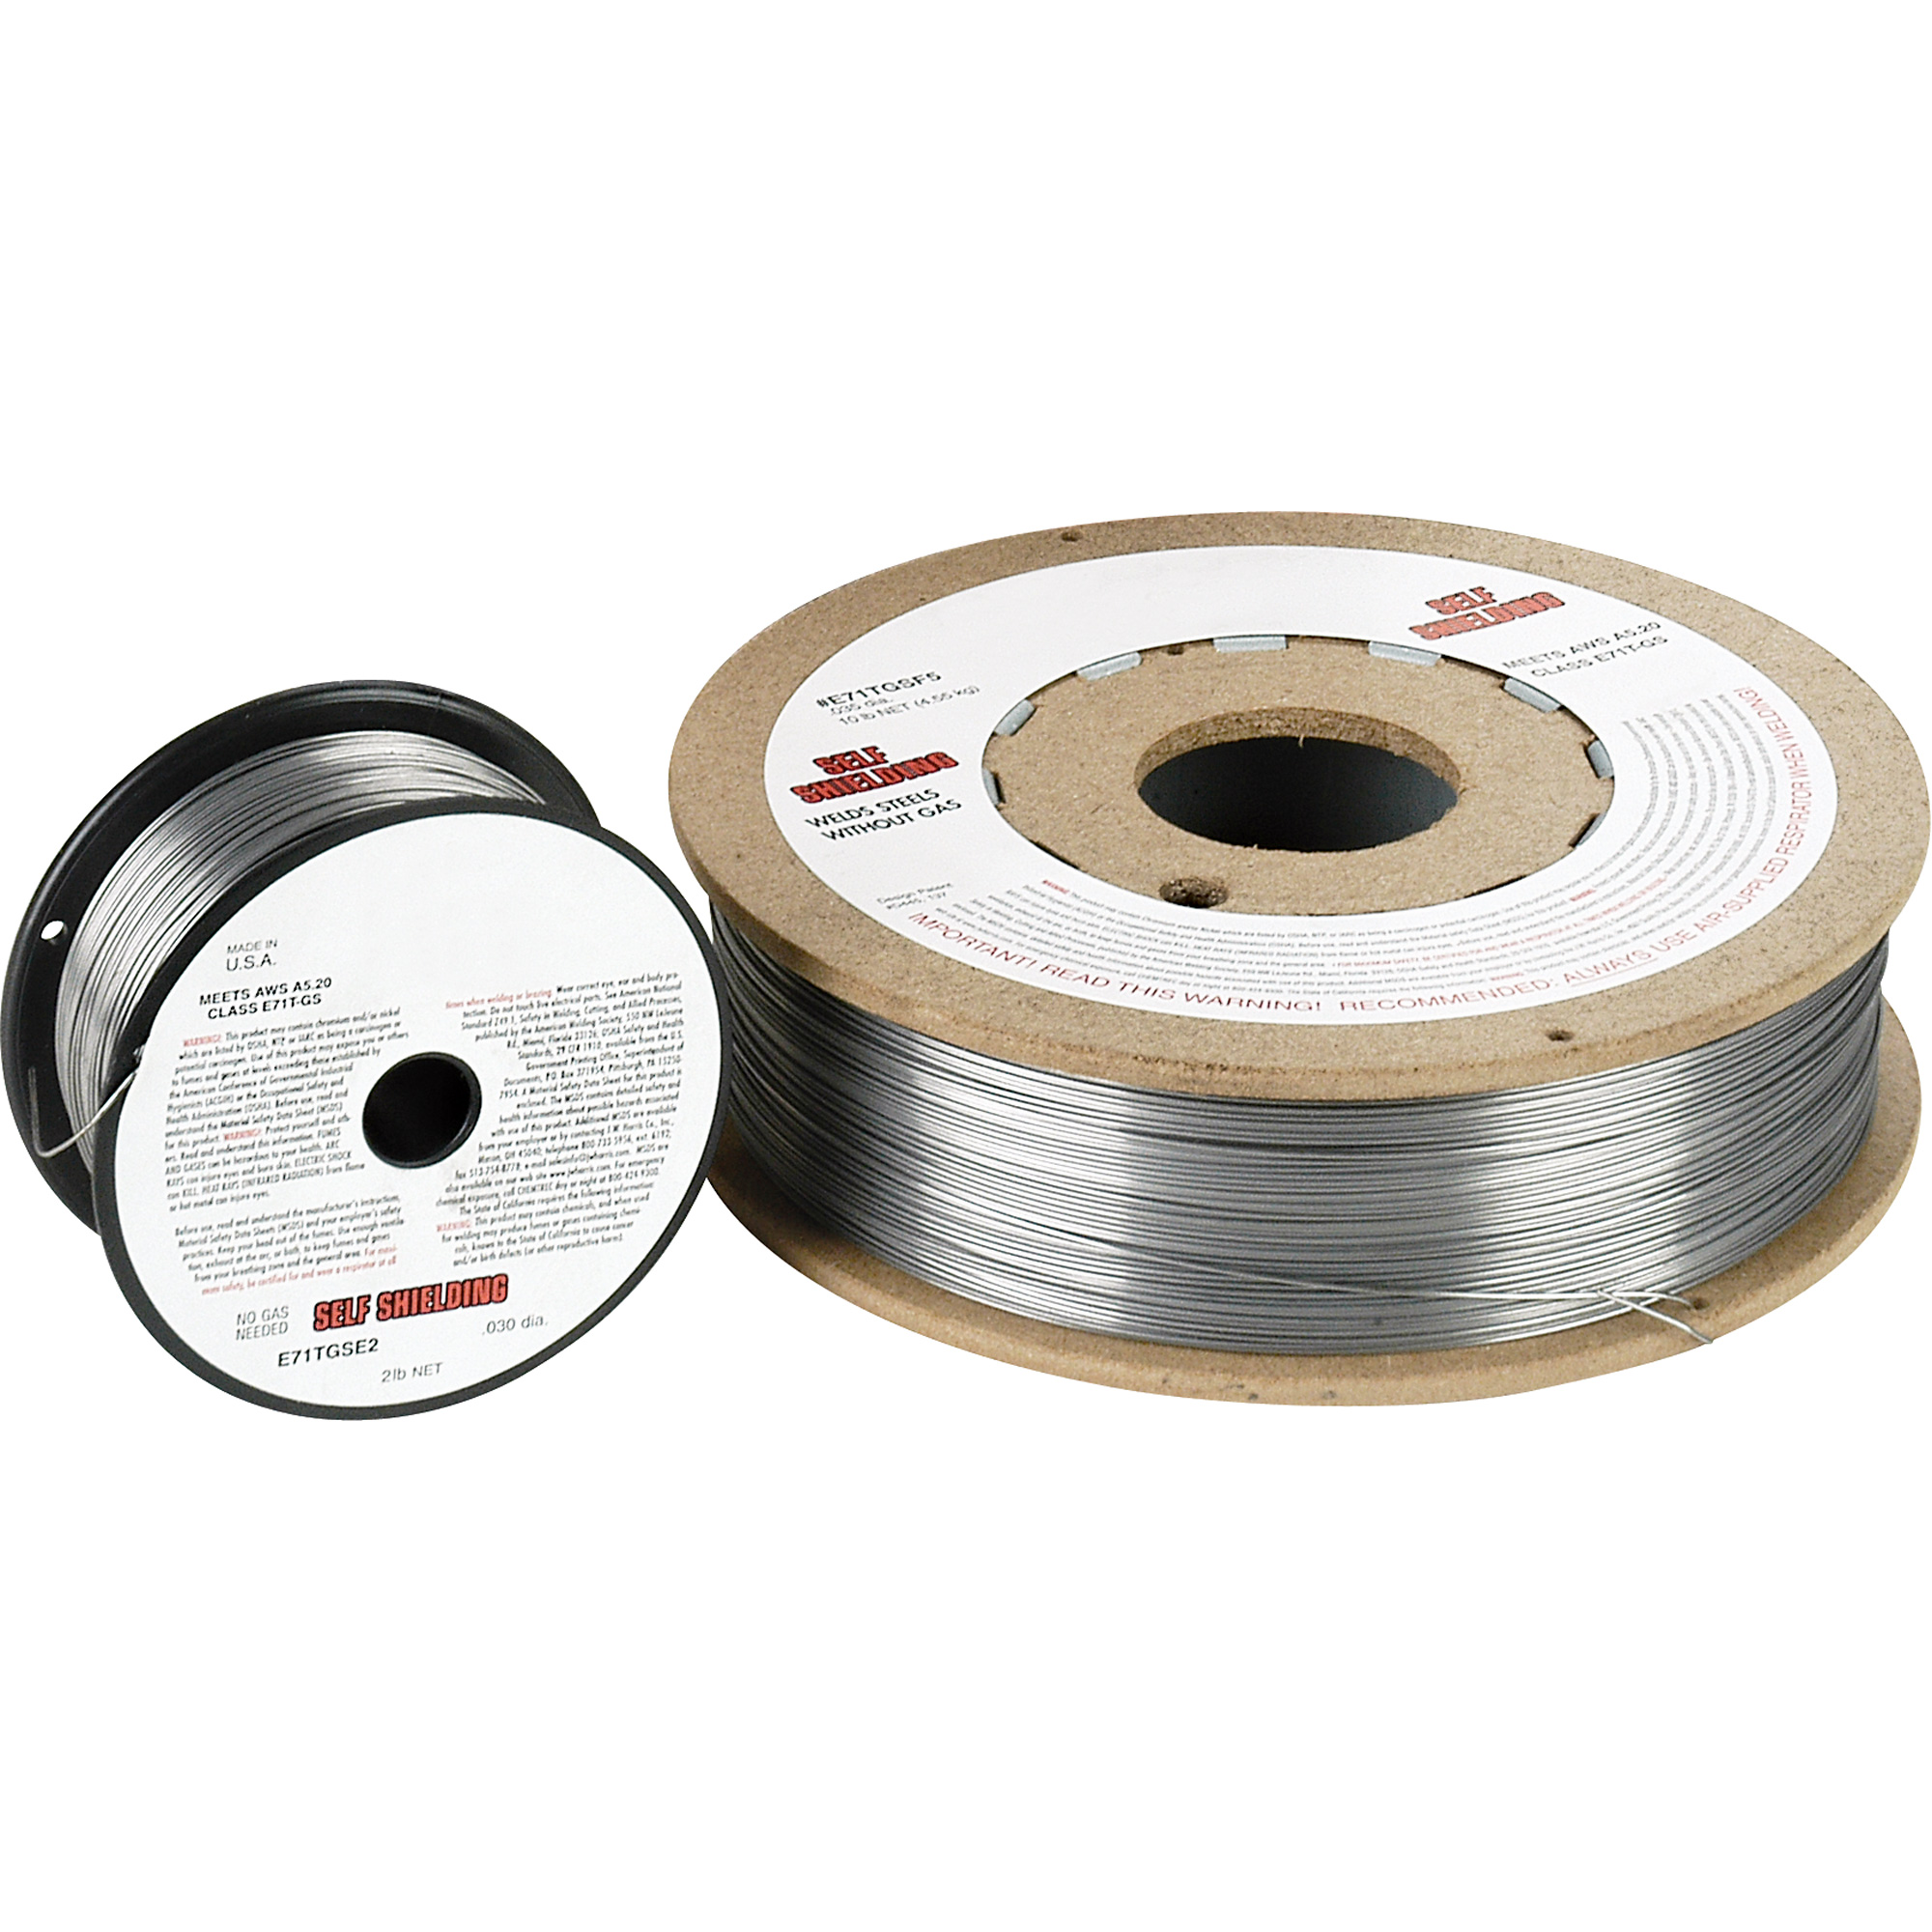 Flux Core Welding Wire >> Self Shielding Mild Steel Flux Cored Welding Wire